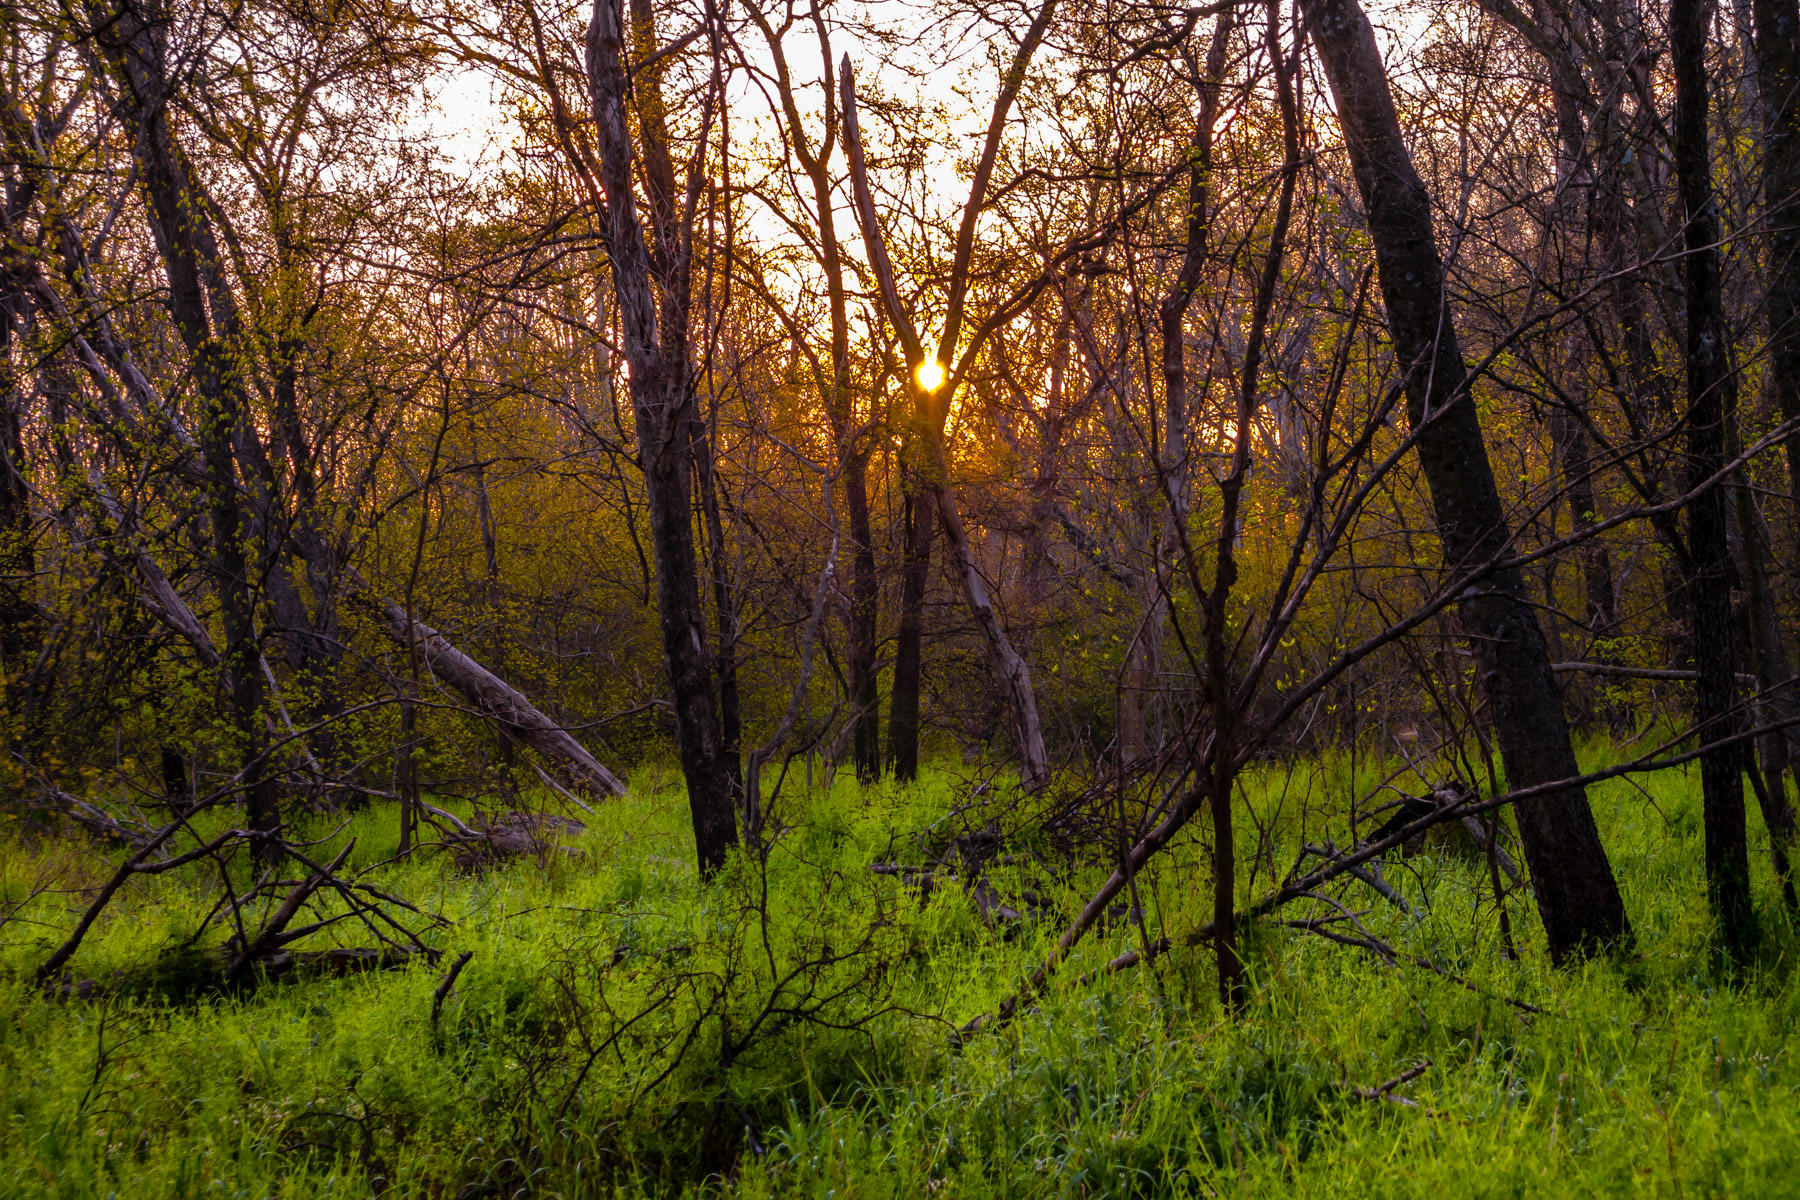 The sunrise illuminates the Great Trinity Forest in South Dallas.